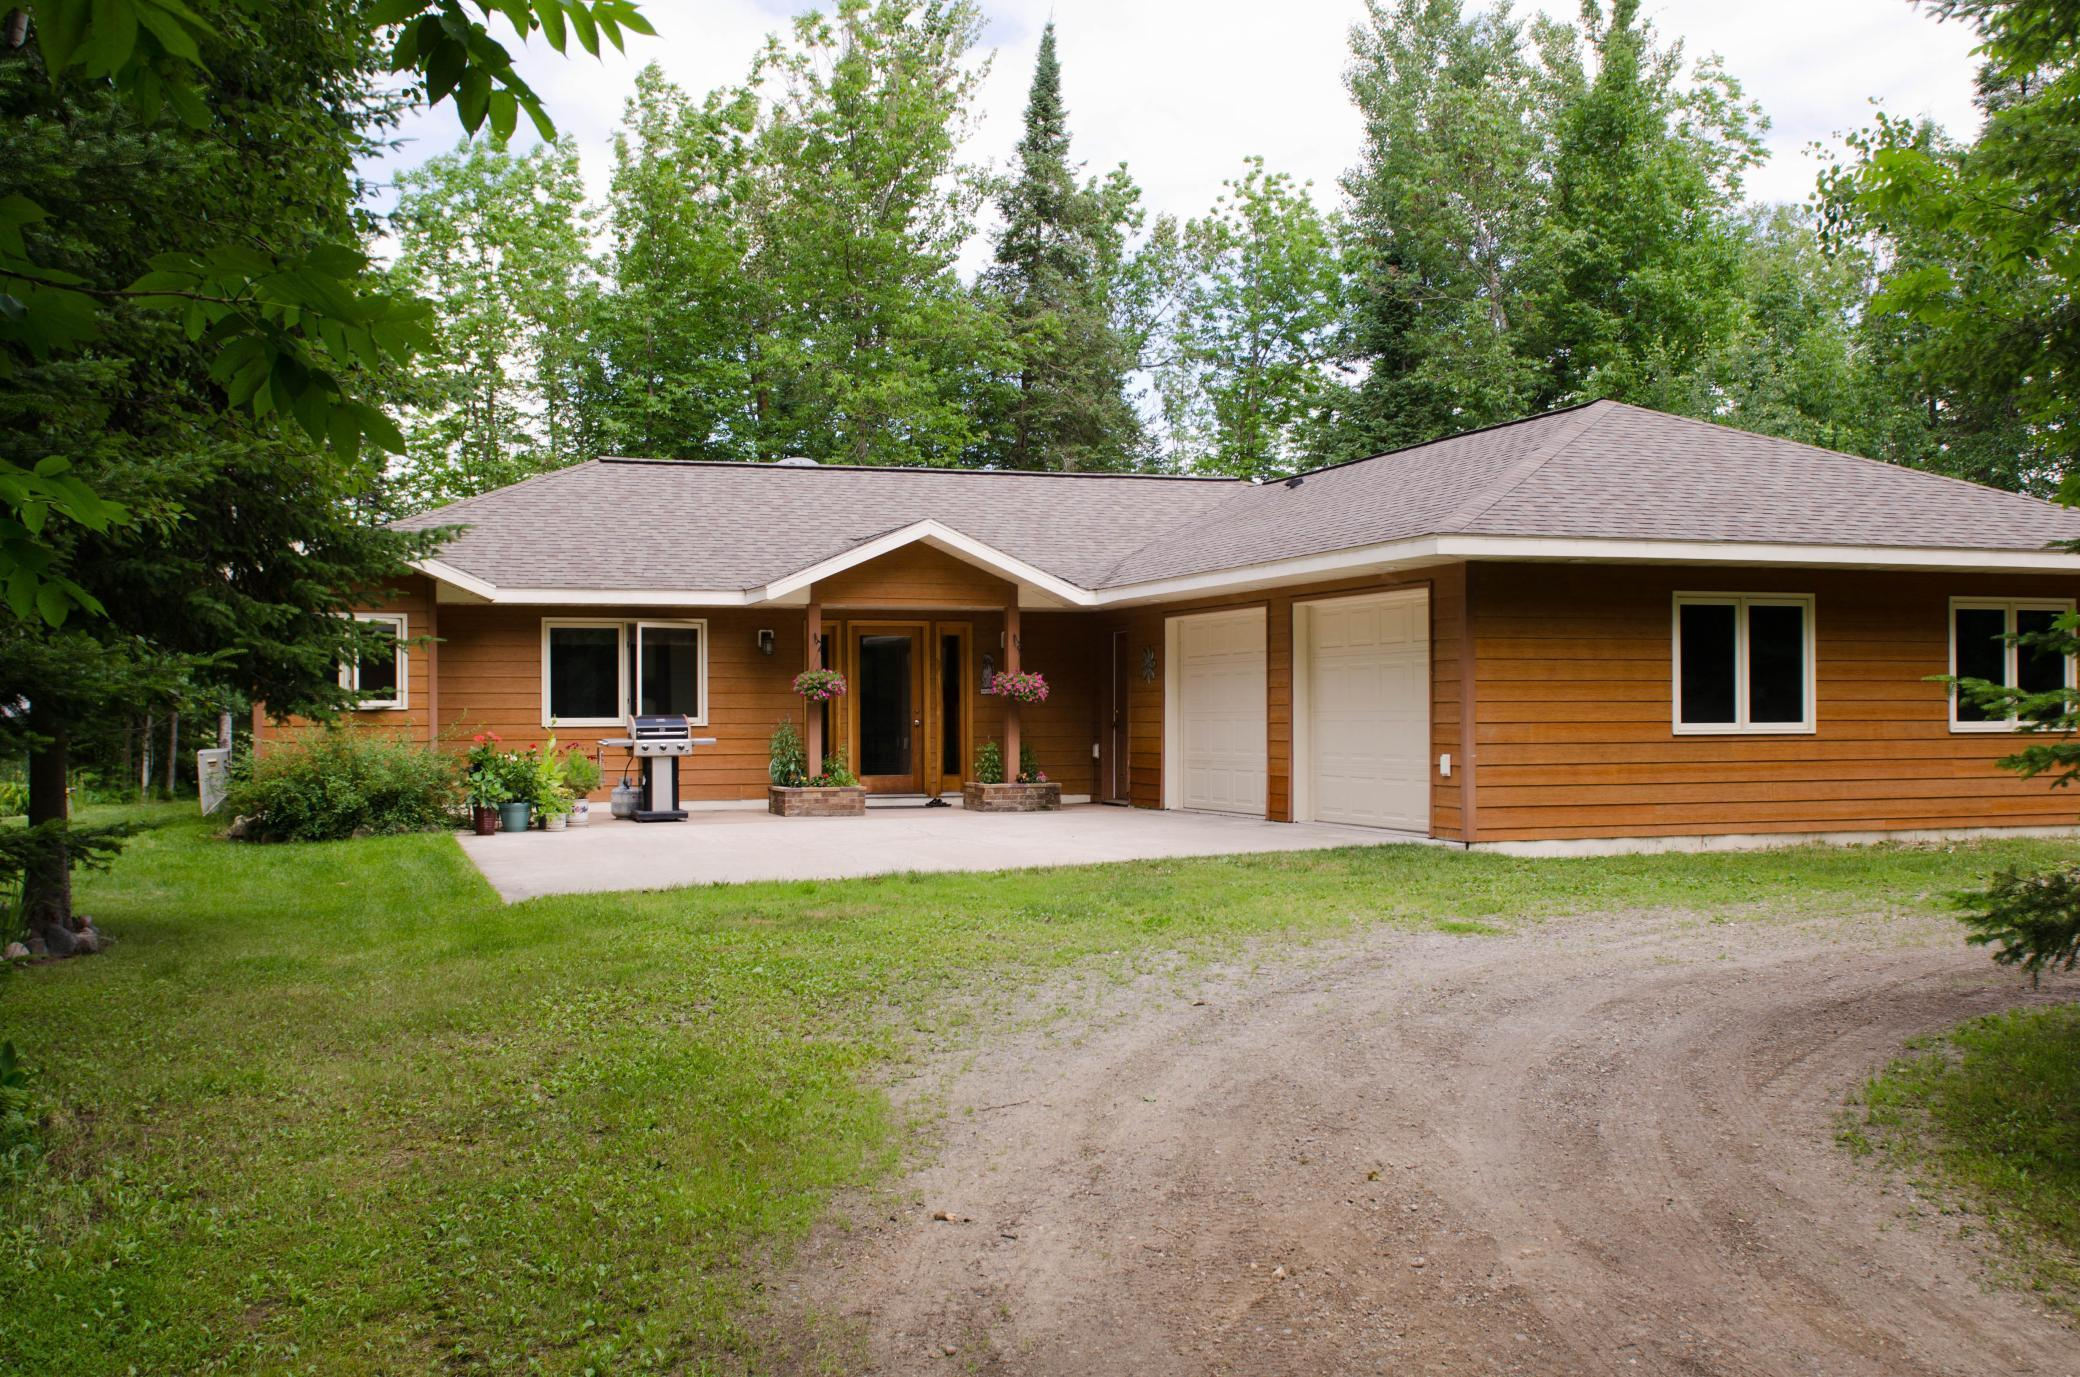 6682 40th NW Property Photo - Williams, MN real estate listing